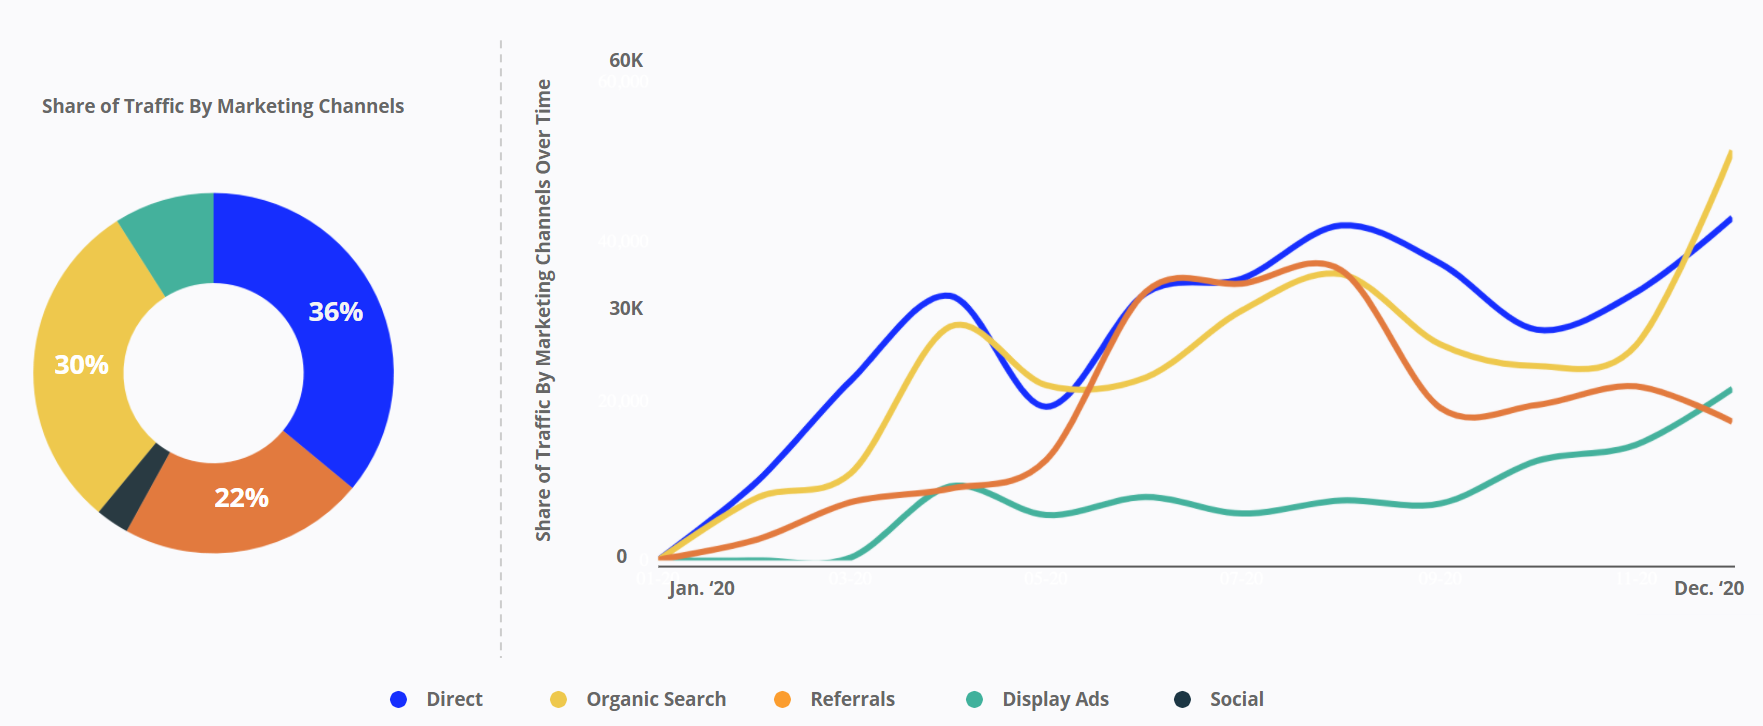 Vaay - Share of Traffic by Marketing Channels